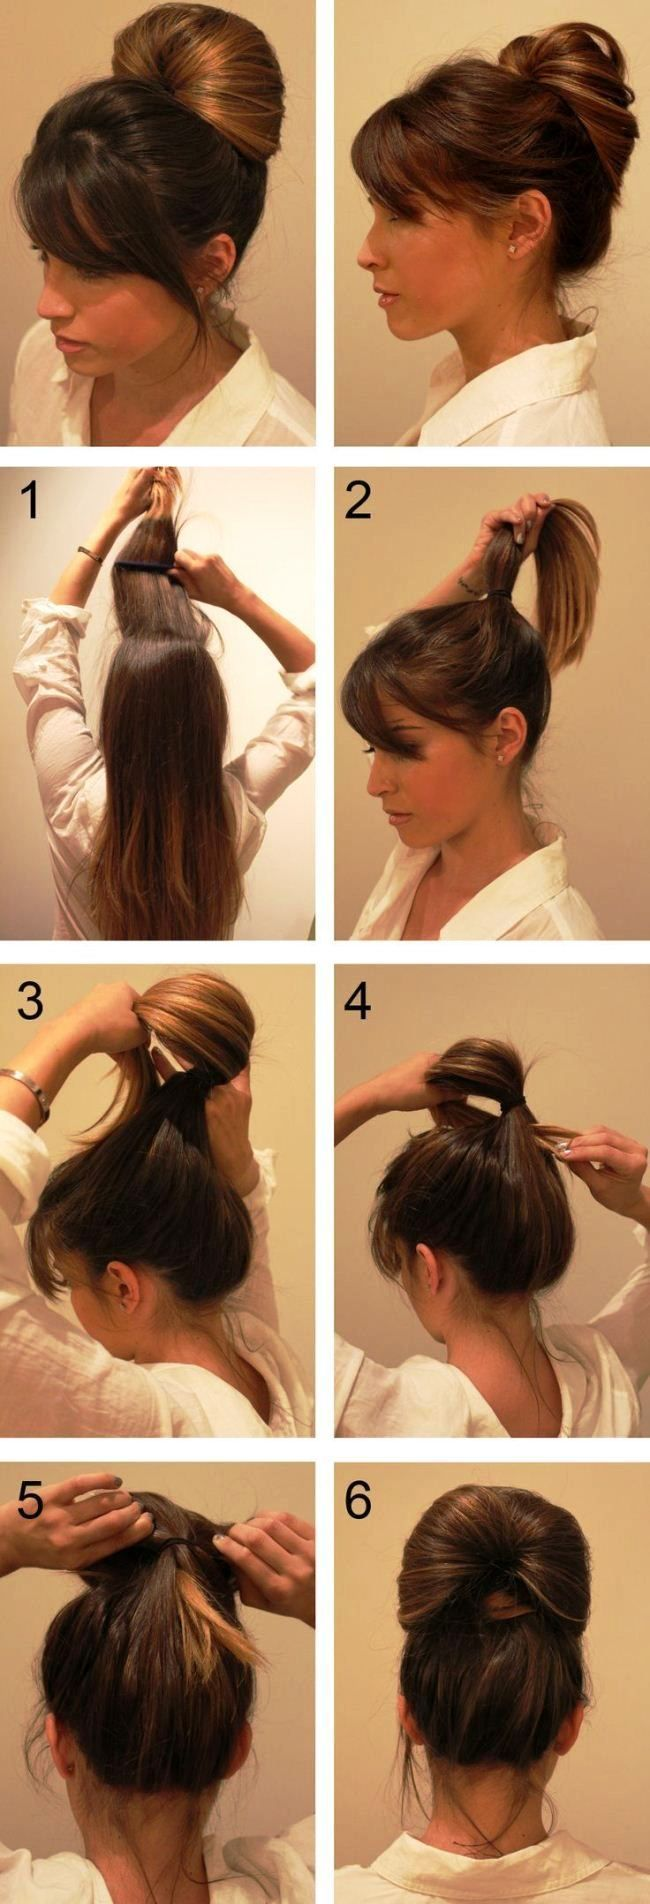 Photo of Simple party hairstyles for long hair tutorials step by step 2018 – hair styles